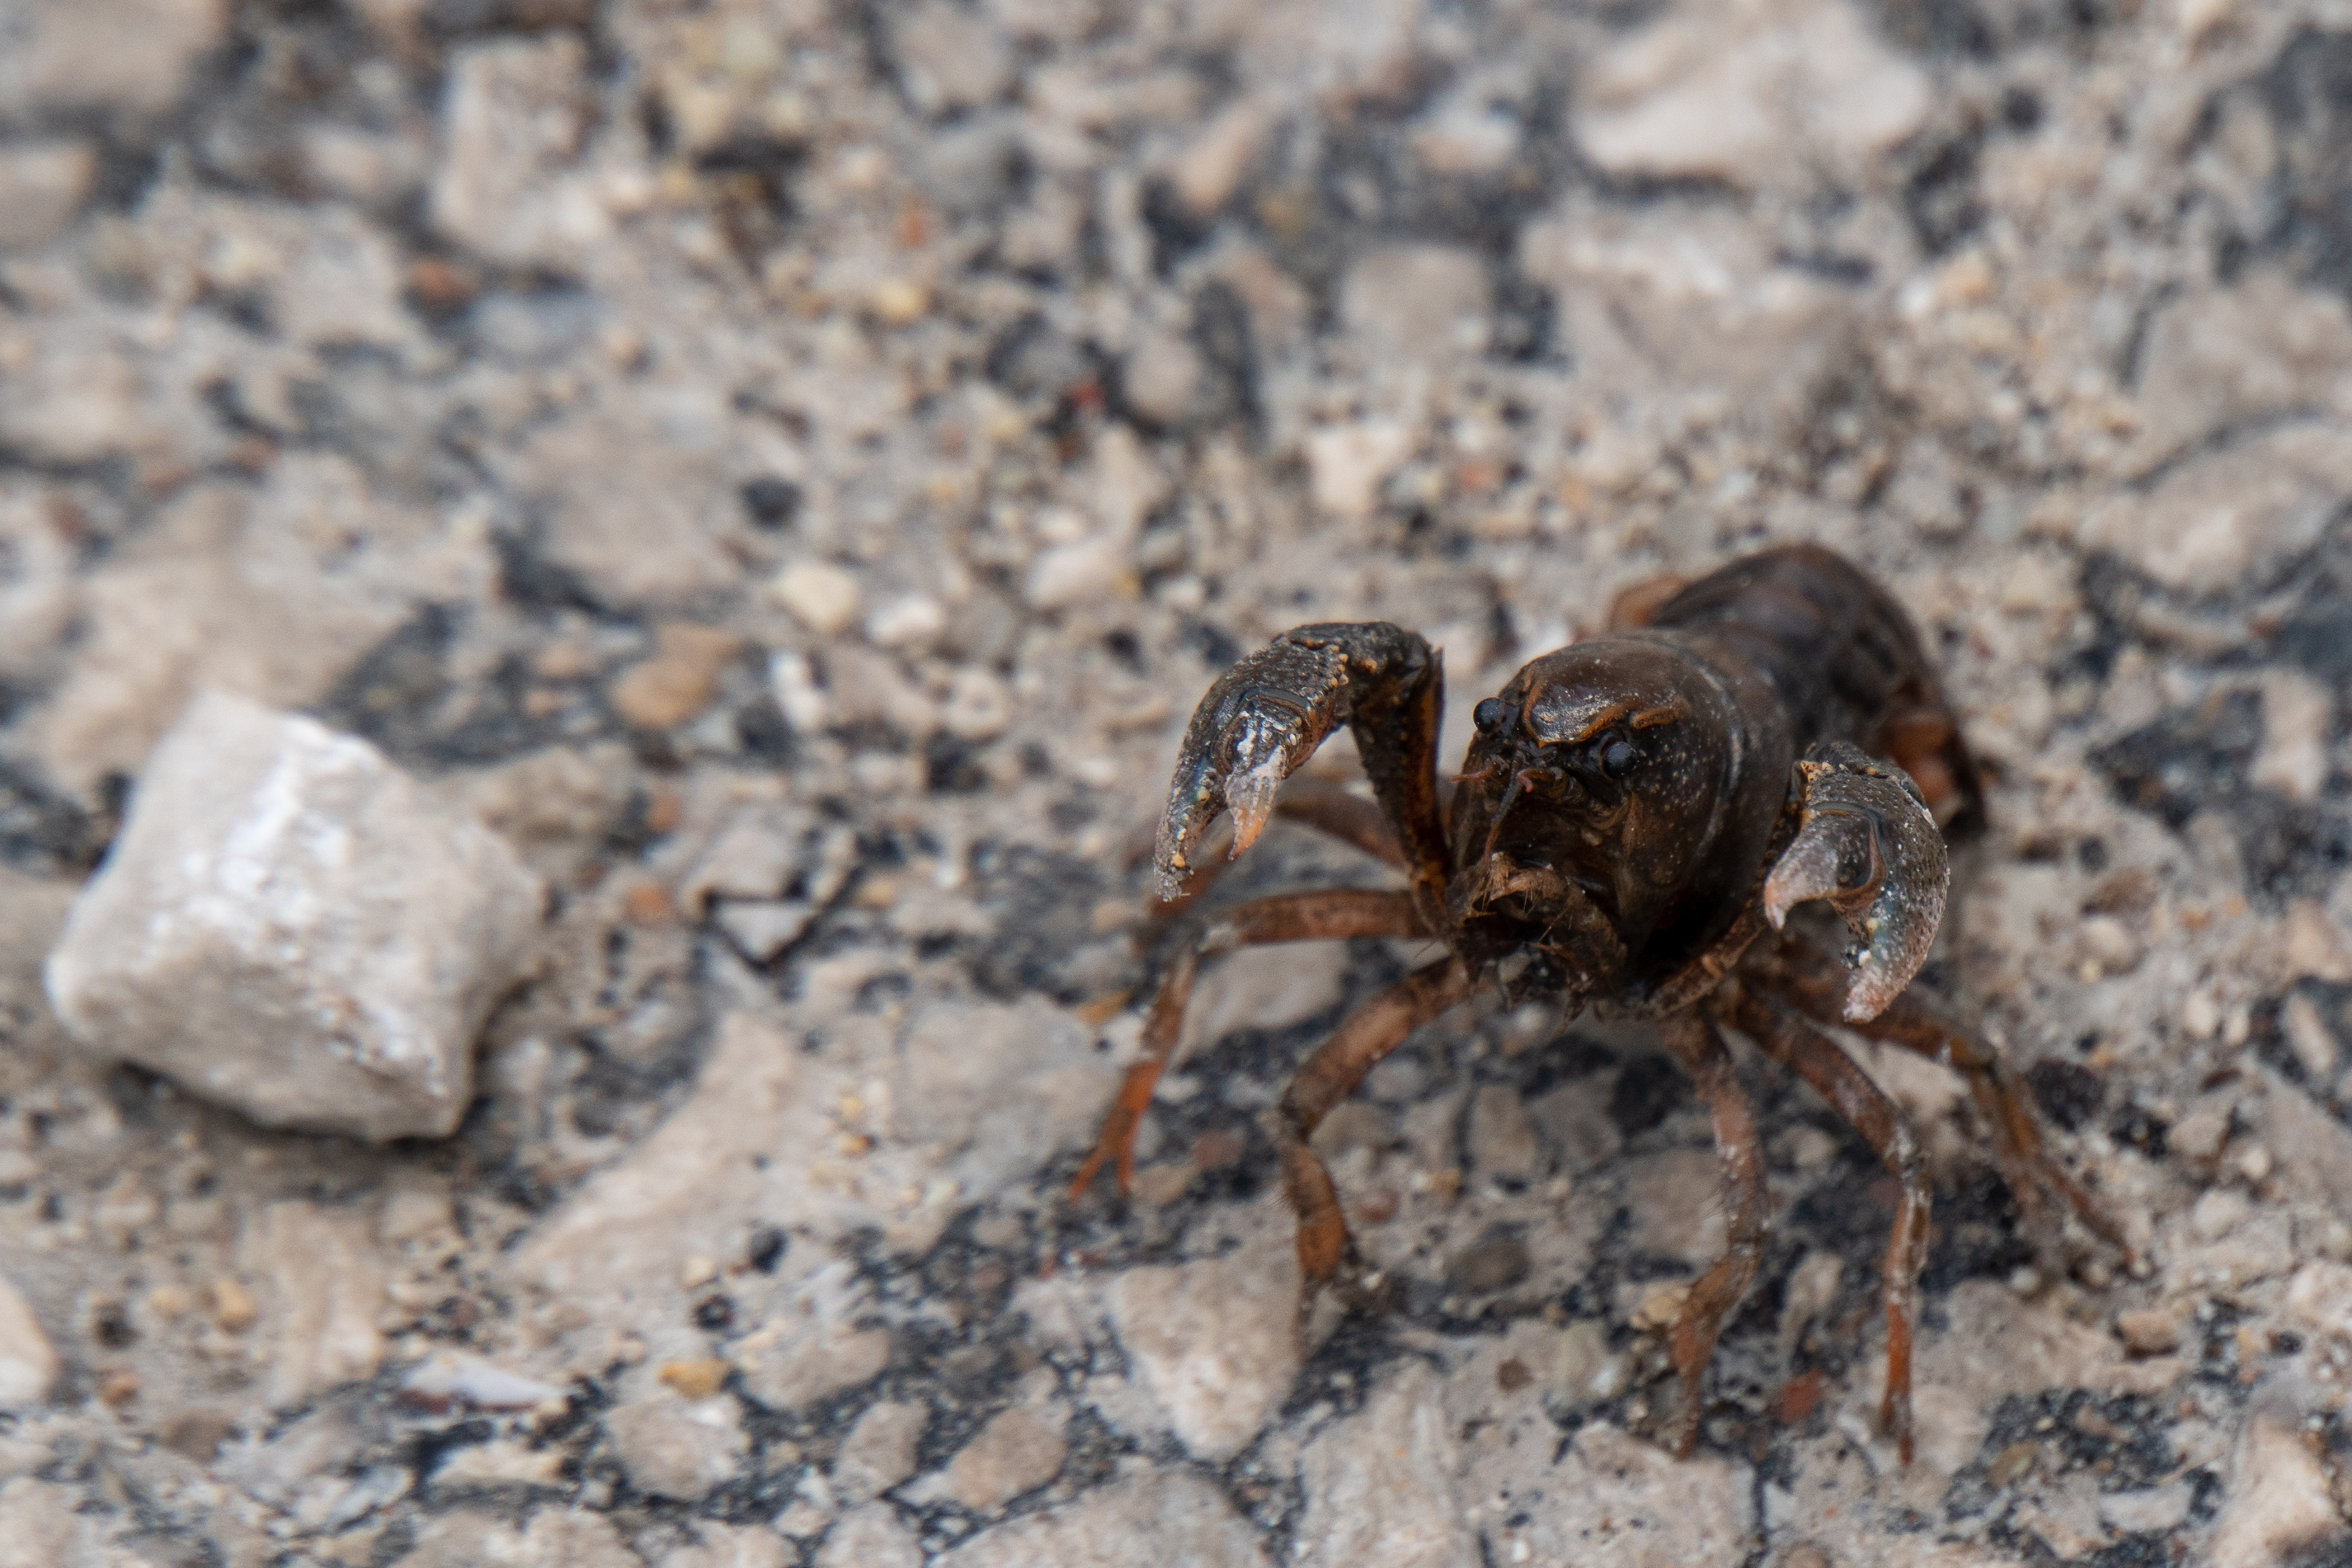 (1/2) A digger crayfish is as surprised as the walker was to see it on the road. nature, wildlife, animal, crayfish Photo: Marguerite Tonjes